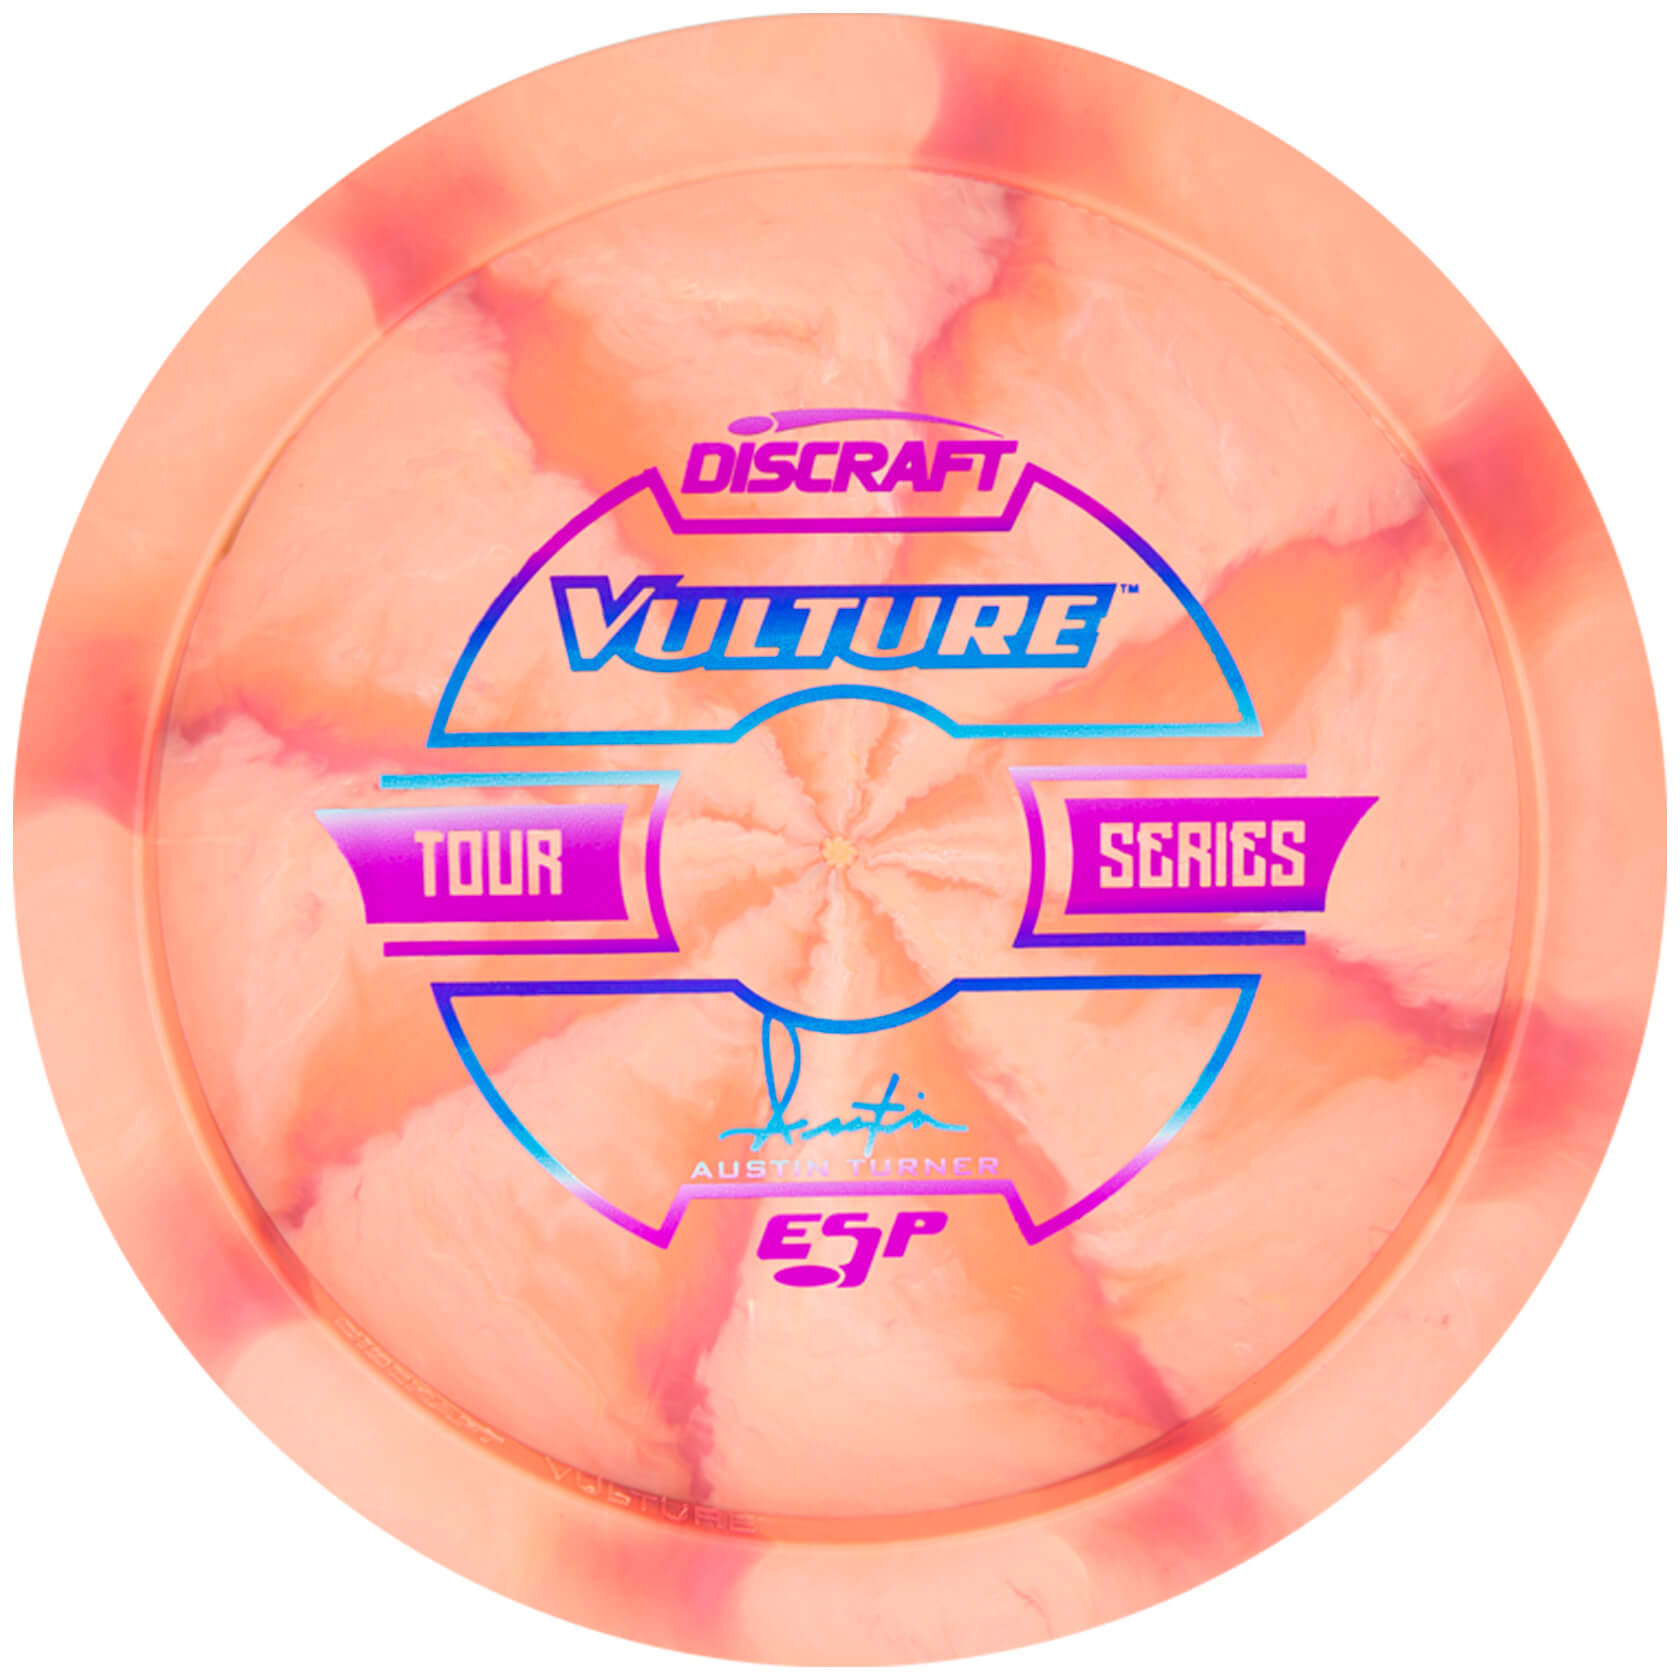 Discraft Swirly ESP Vulture Austin Turner 2019 Tour Series